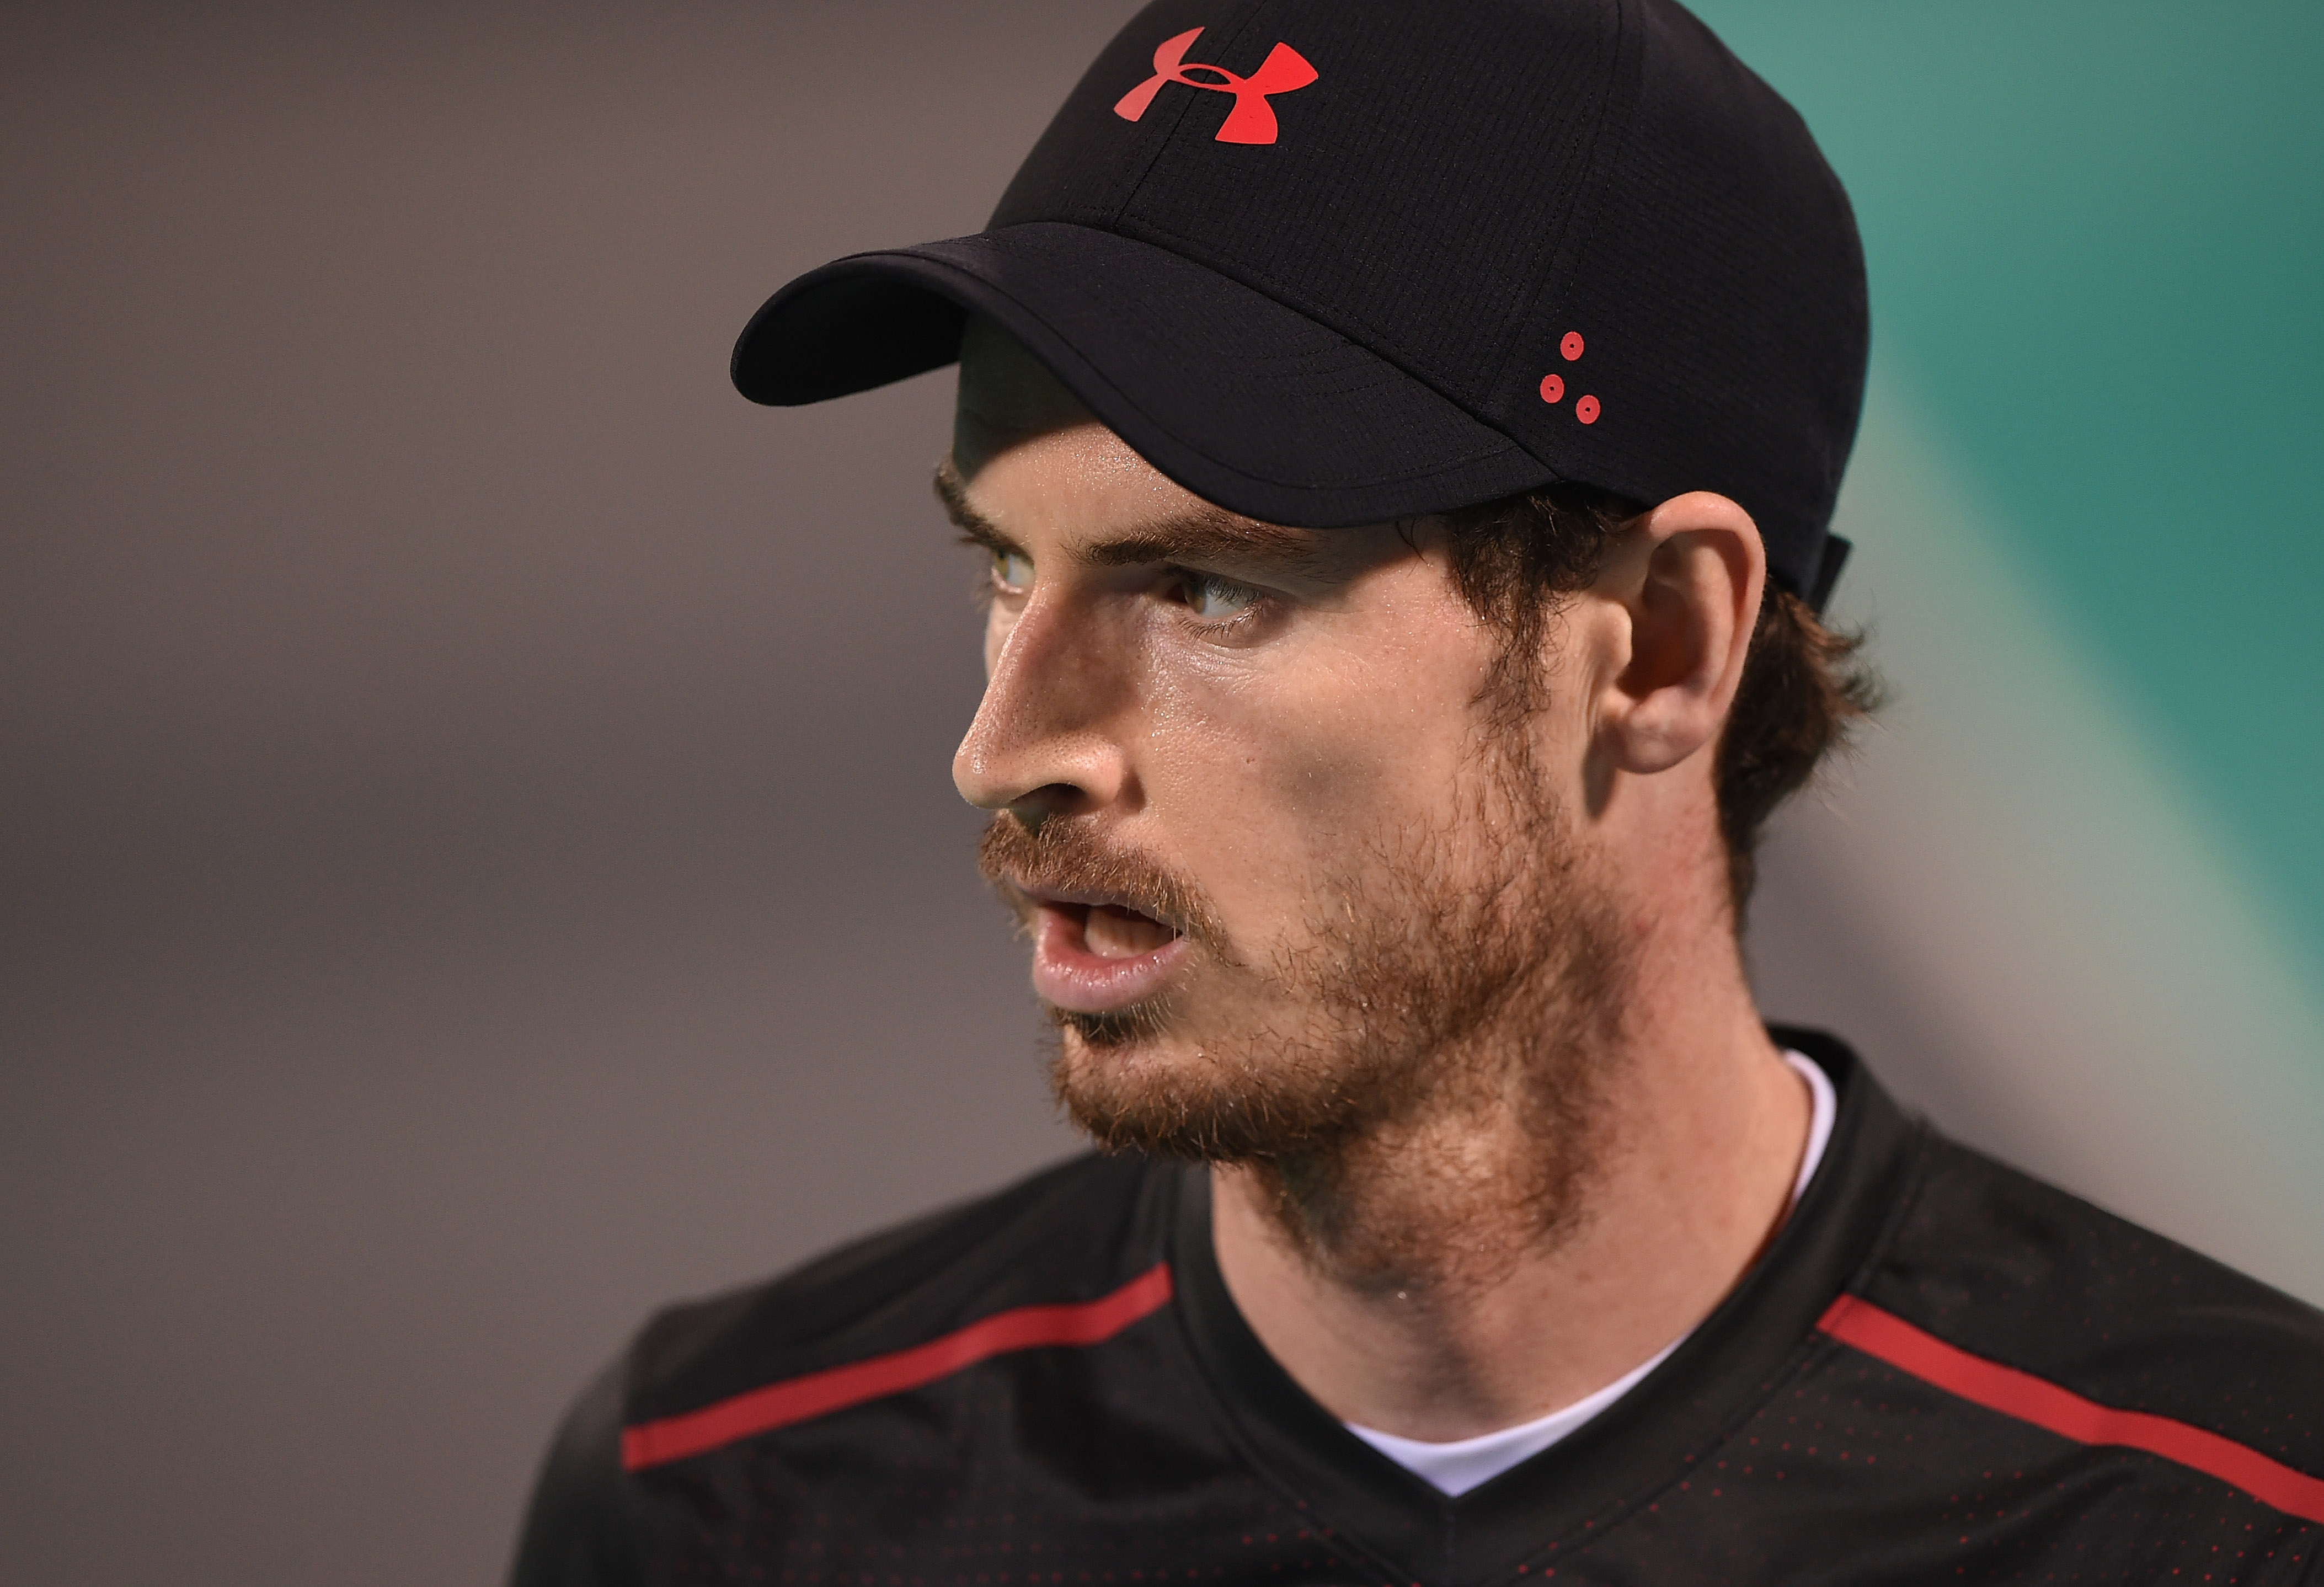 ABU DHABI, UNITED ARAB EMIRATES - DECEMBER 29: Andy Murray of Great Britain looks on during his exhibition match against Roberto Bautista Agut of Spain on day two of the Mubadala World Tennis Championship at International Tennis Centre Zayed Sports City on December 29, 2017 in Abu Dhabi, United Arab Emirates.  (Photo by Tom Dulat/Getty Images) Getty TL